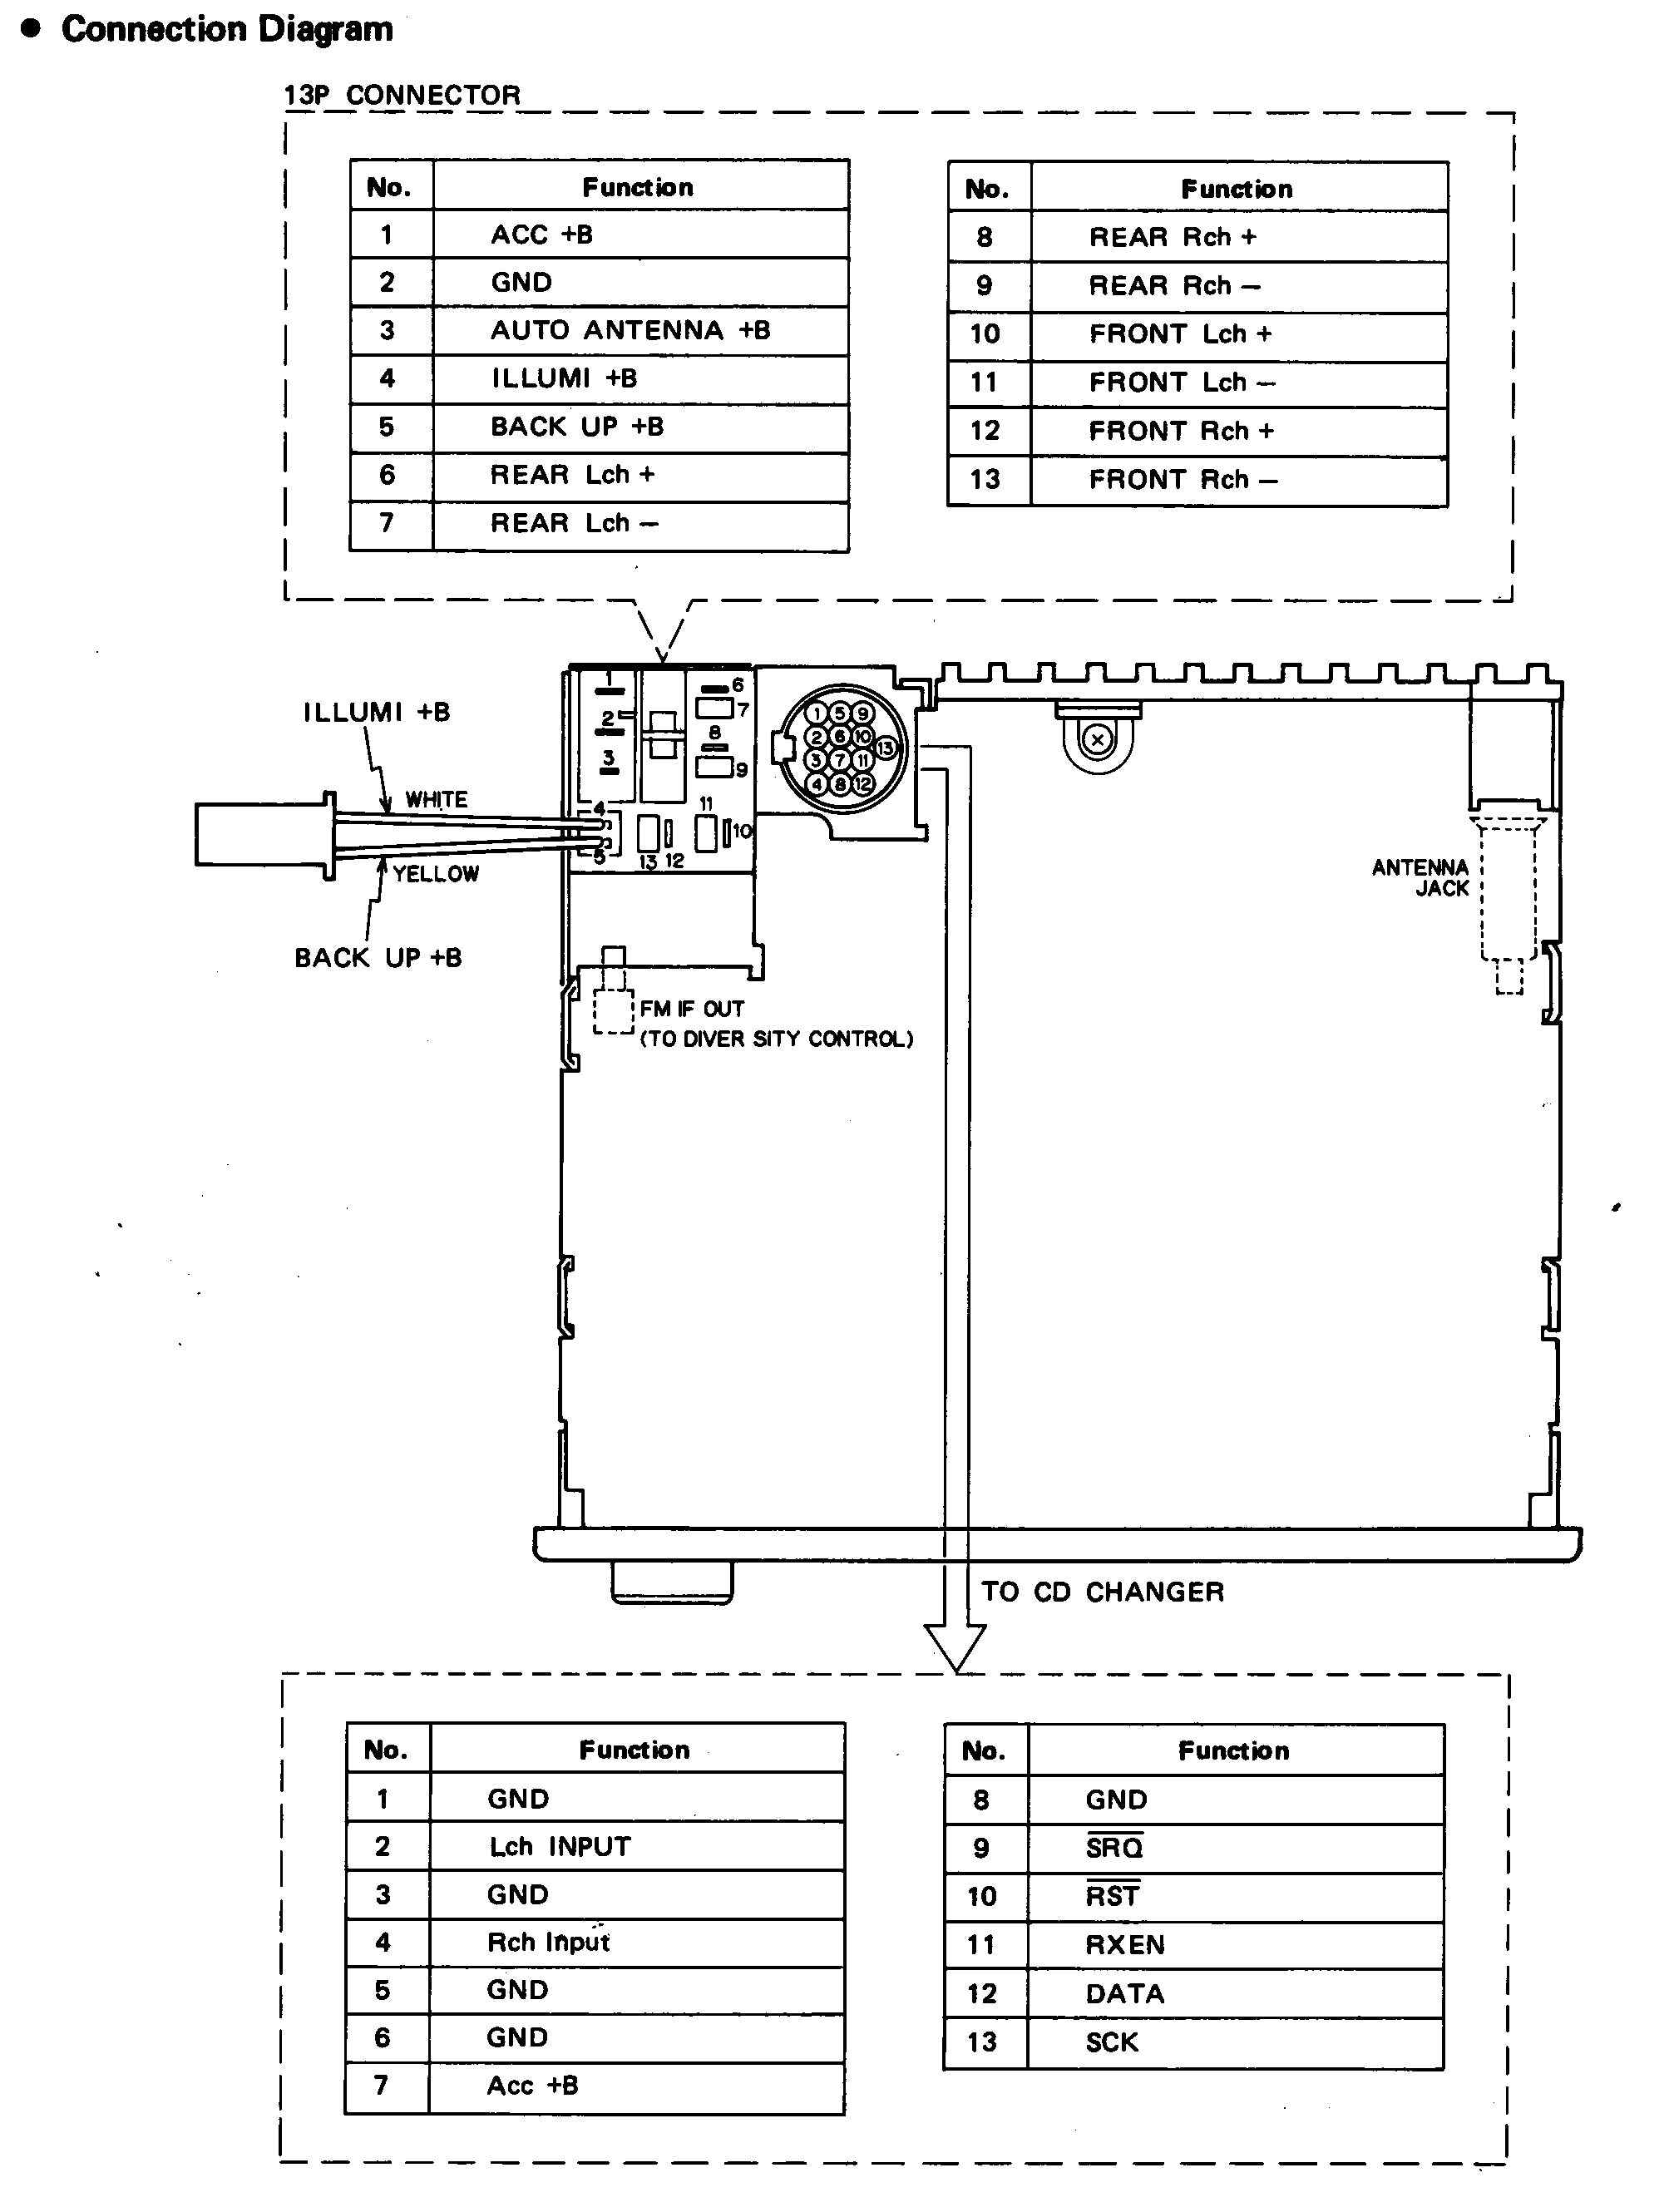 bose wiring diagrams simple wiring diagram car audio wire diagram codes bmw factory car stereo repair bose bose 28060 ar200 wiring diagram bose wiring diagrams